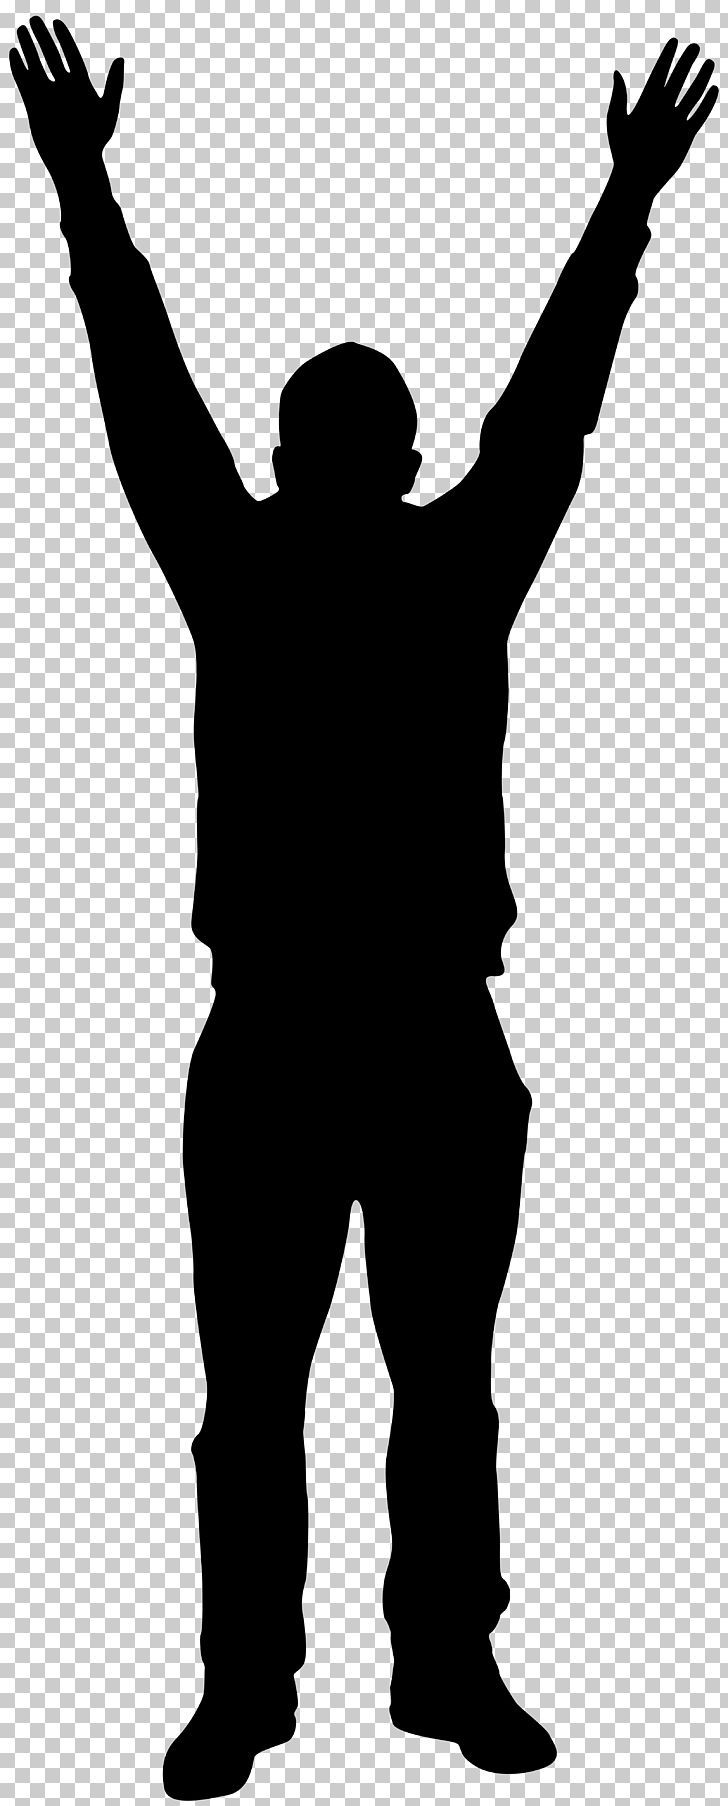 Silhouette Man Png Angle Arm Black And White Clipart Clip Art Silhouette Man Person Silhouette Silhouette